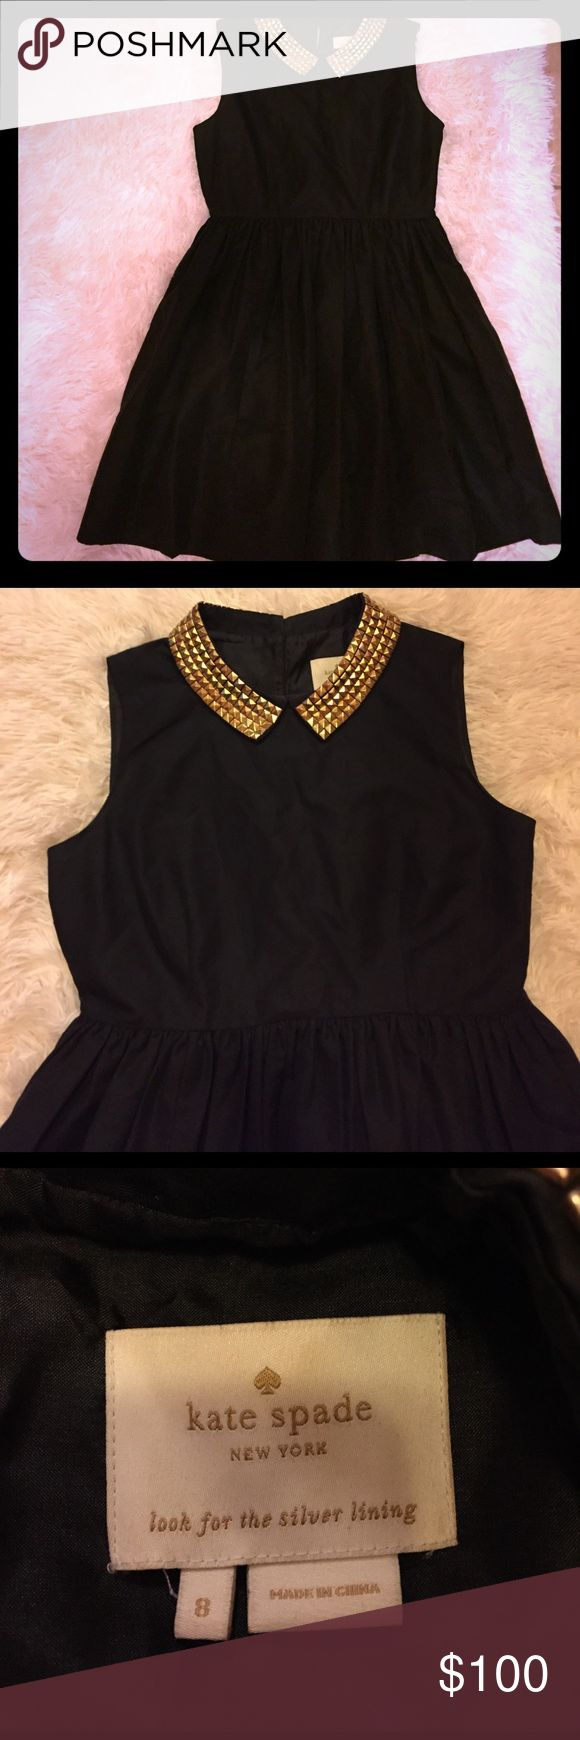 Kate Spade Black  dress with golden spikes collar Used but in very good conditions for special event. kate spade Dresses Midi